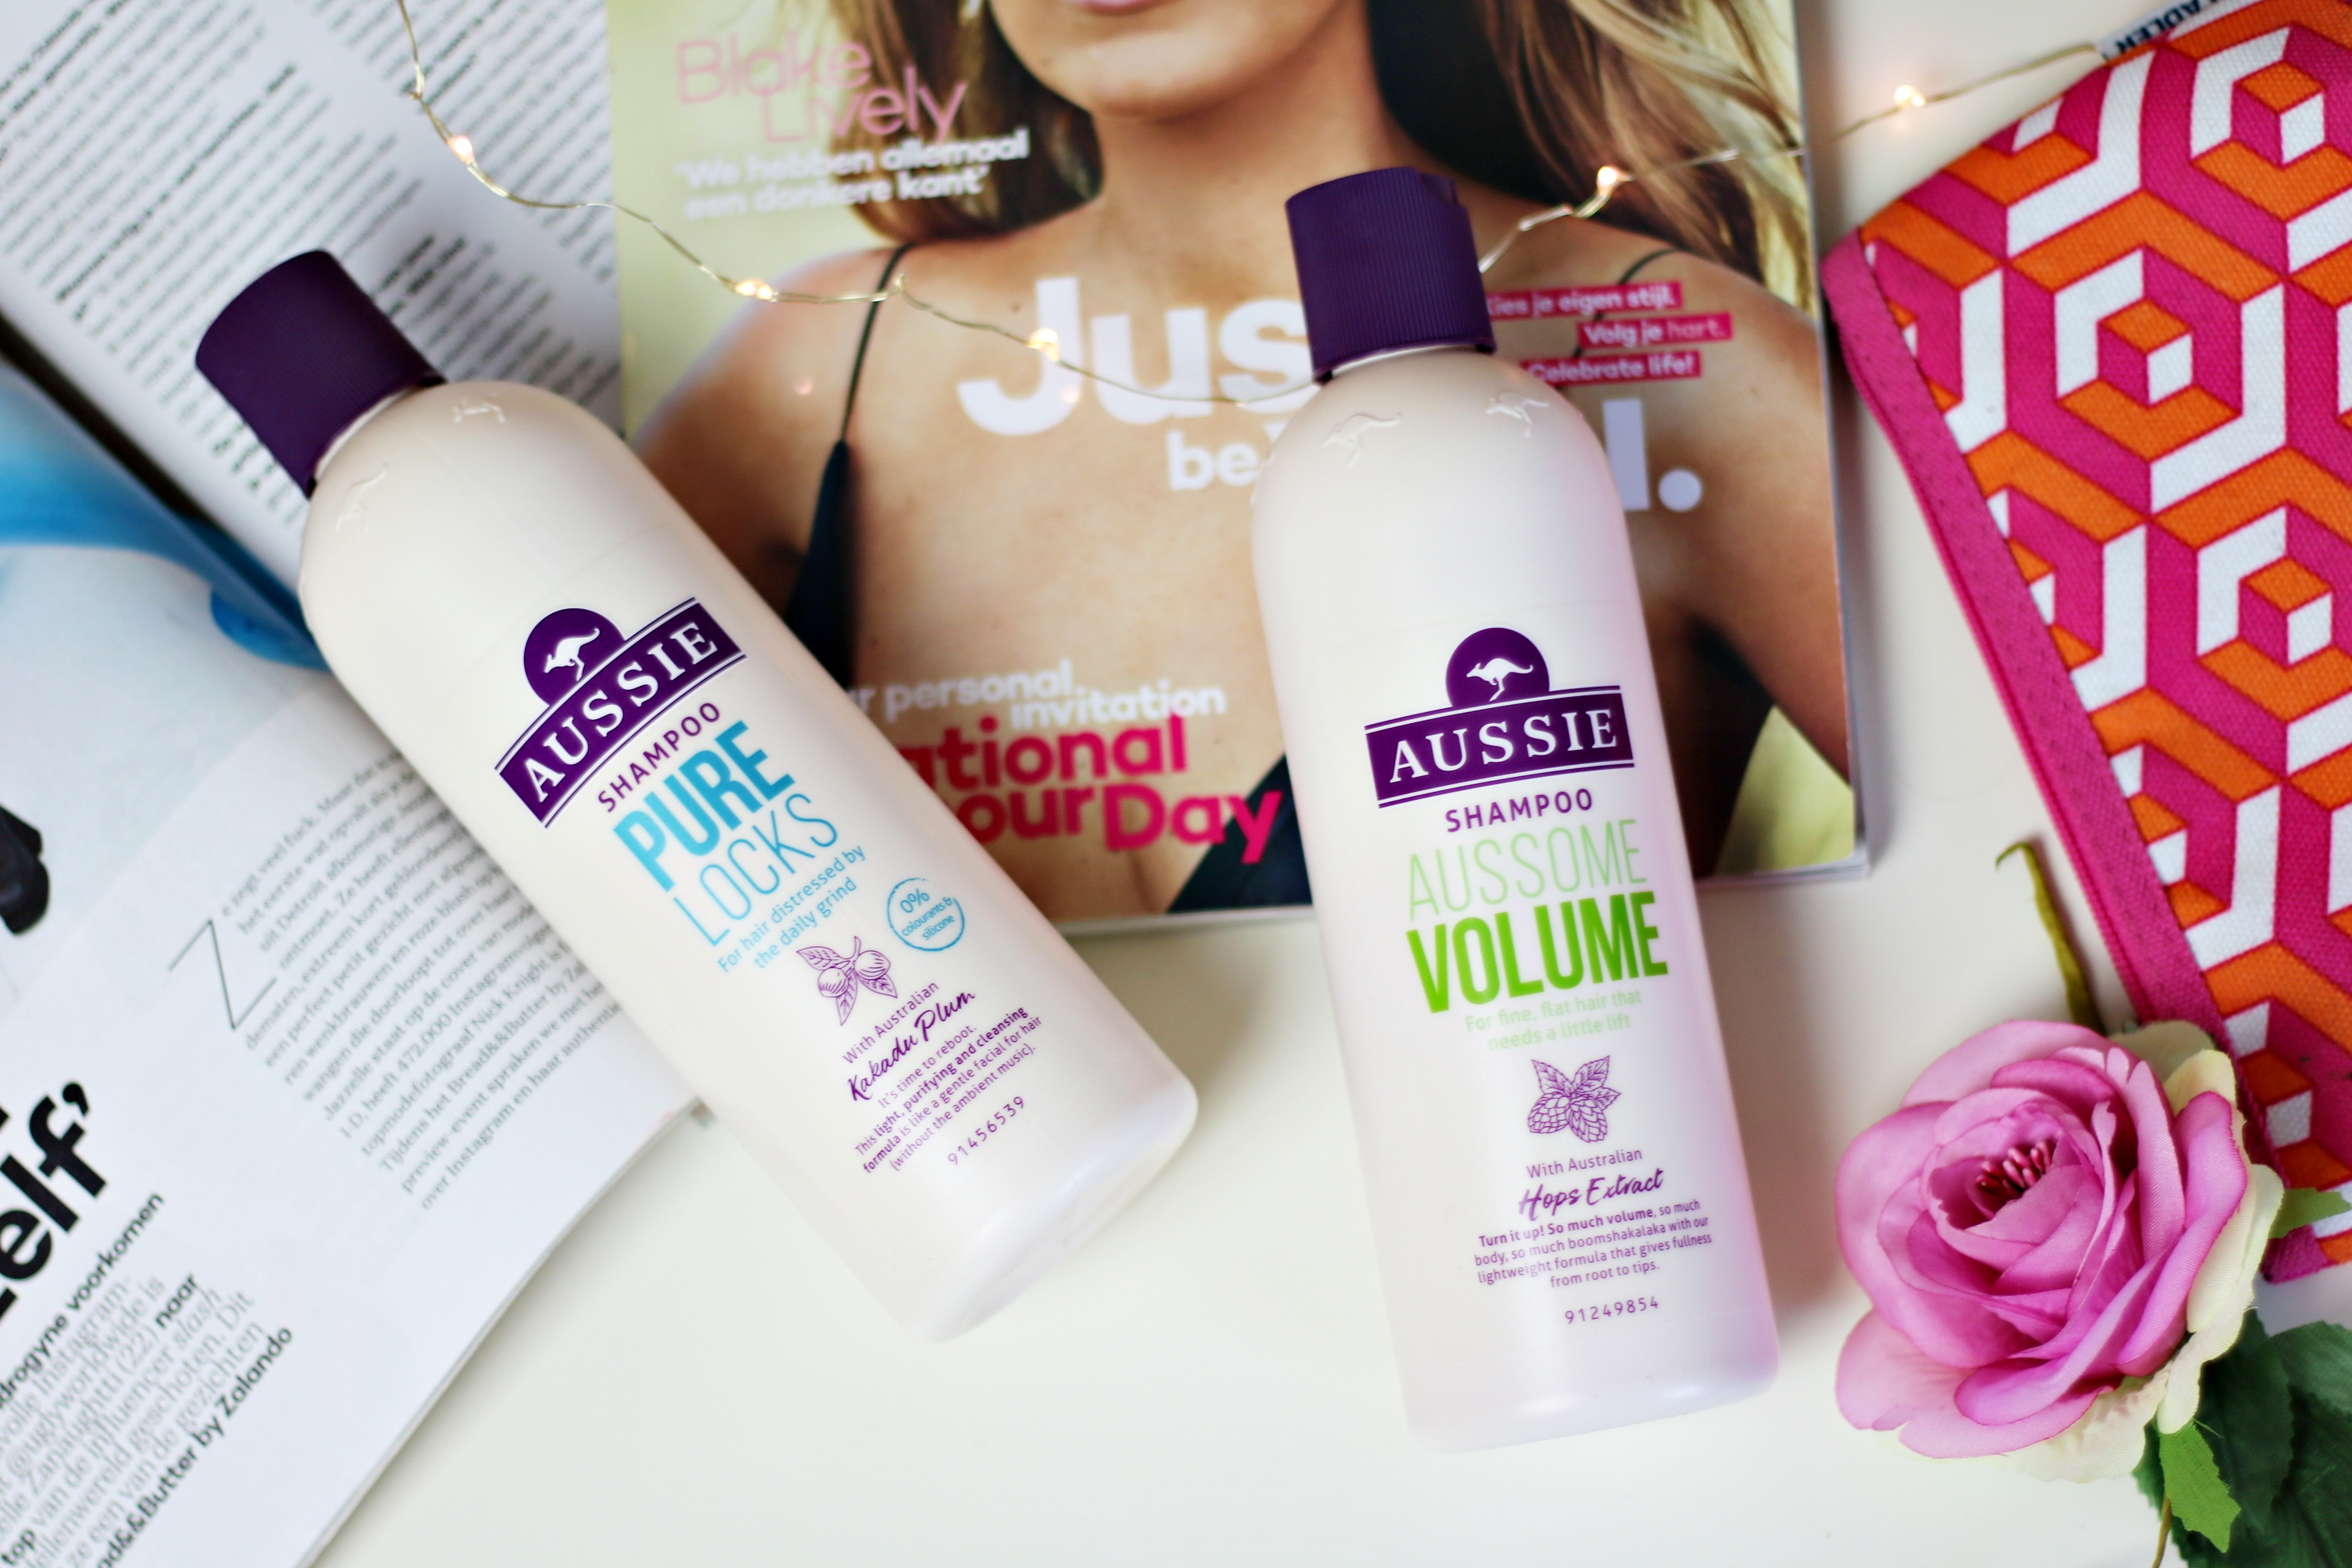 Get Weightless And Beautiful Hair With These Aussie Shampoo's!